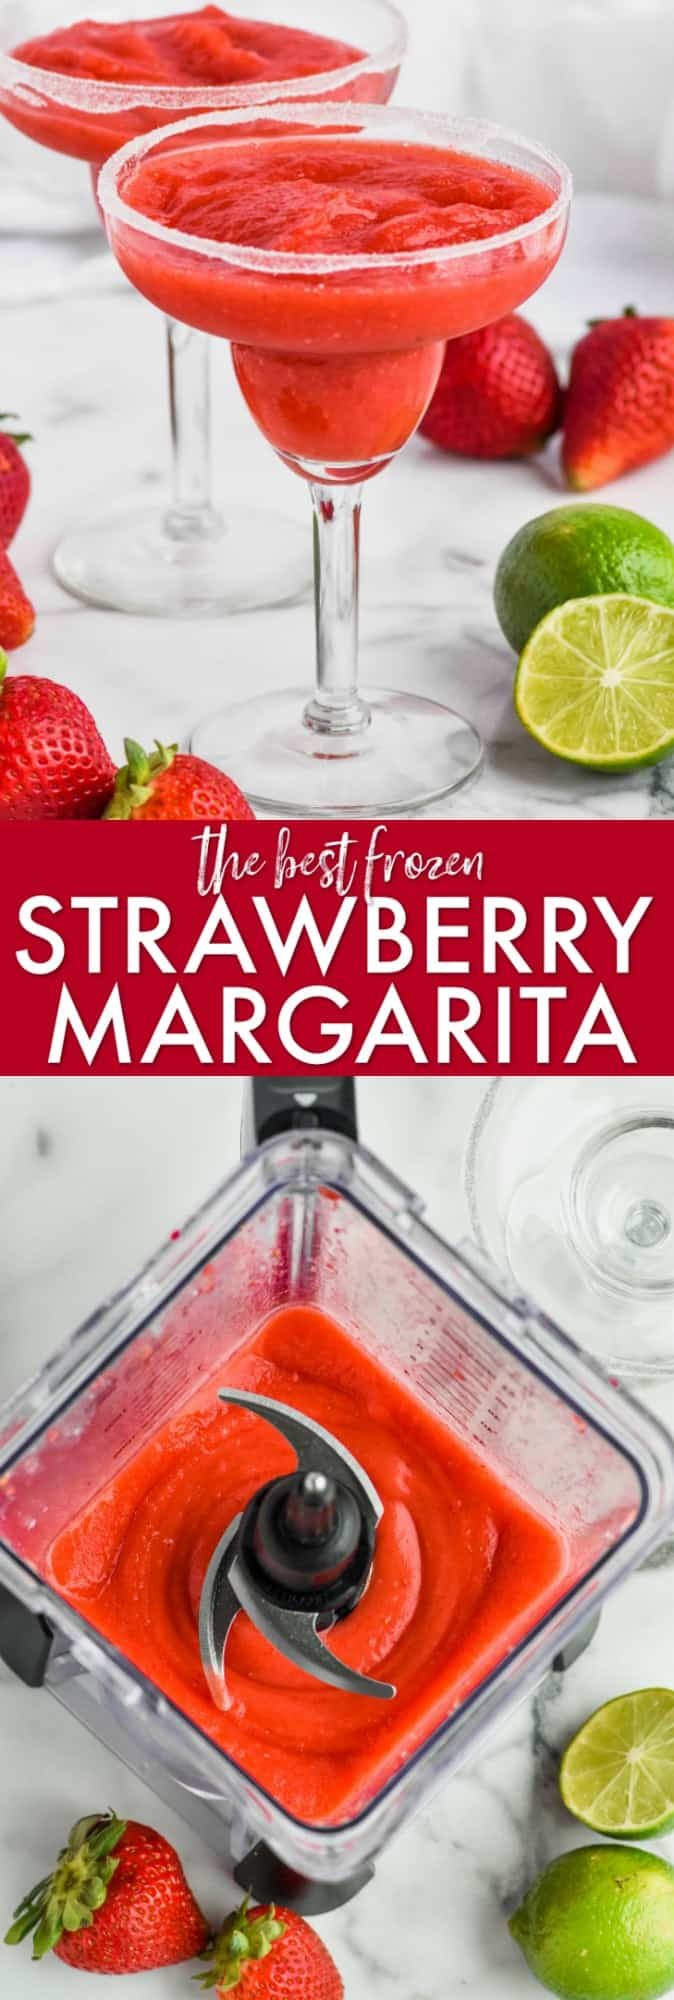 collage of strawberry margarita pictures